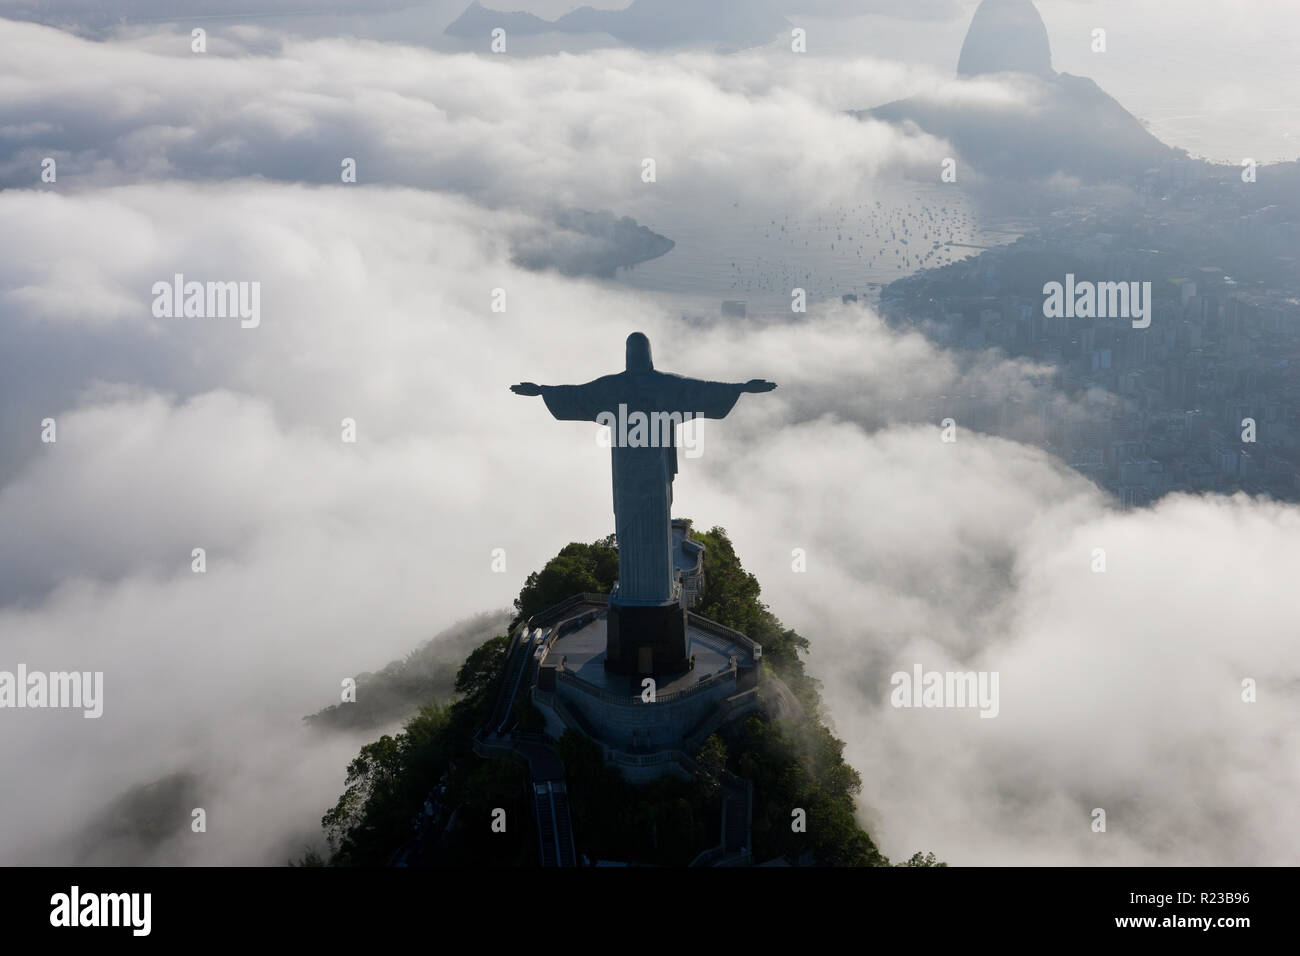 The giant Art Deco statue of Jesus, known as Cristo Redentor (Christ the Redeemer), on Corcovado mountain in Rio de Janeiro, Brazil. Stock Photo